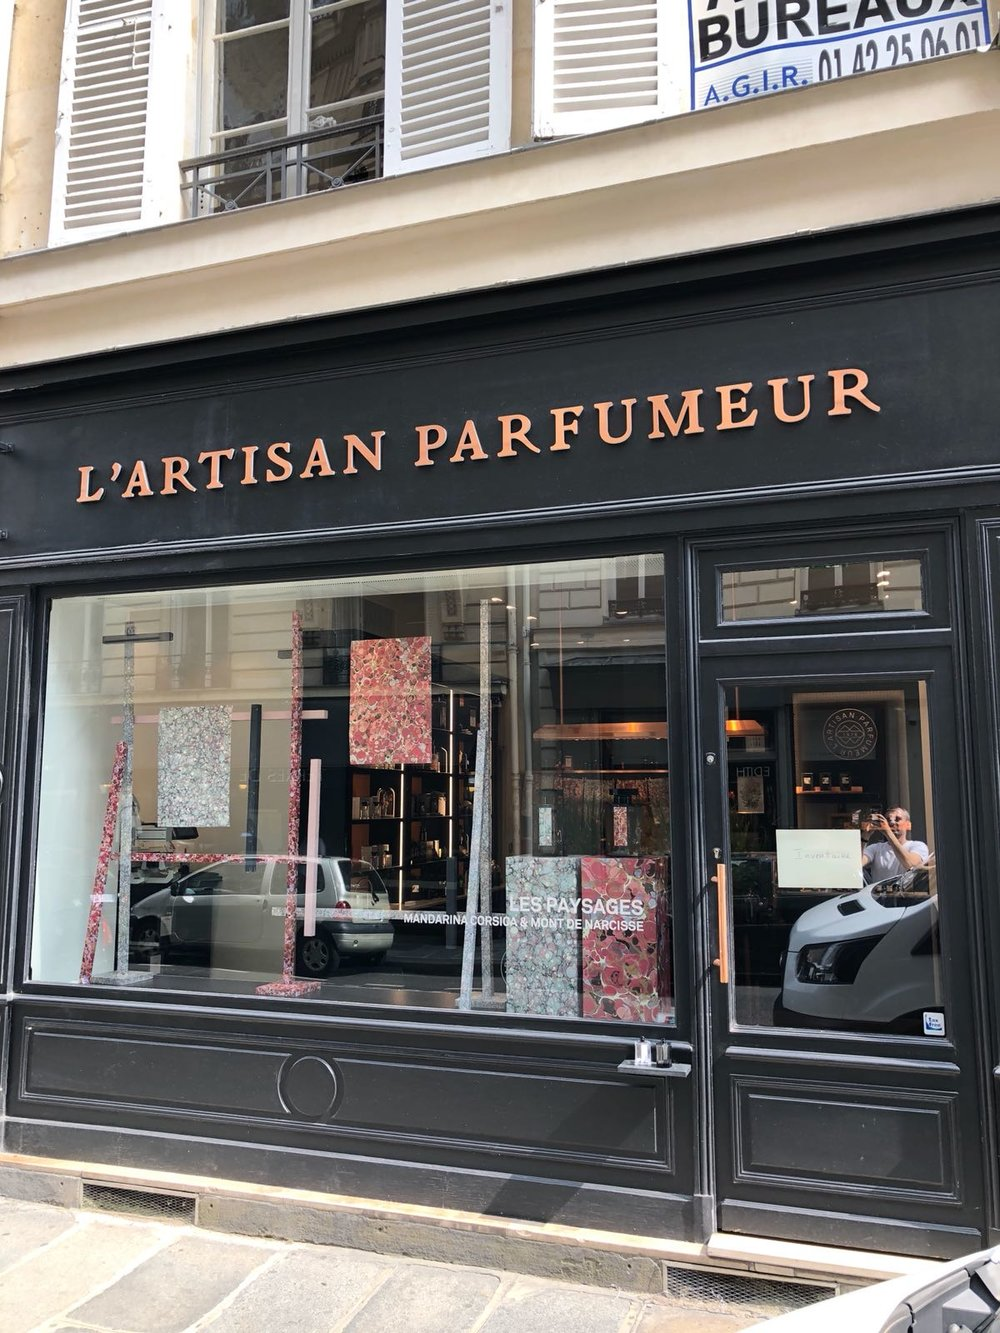 L'artisan parfumer window display at Vignon Store